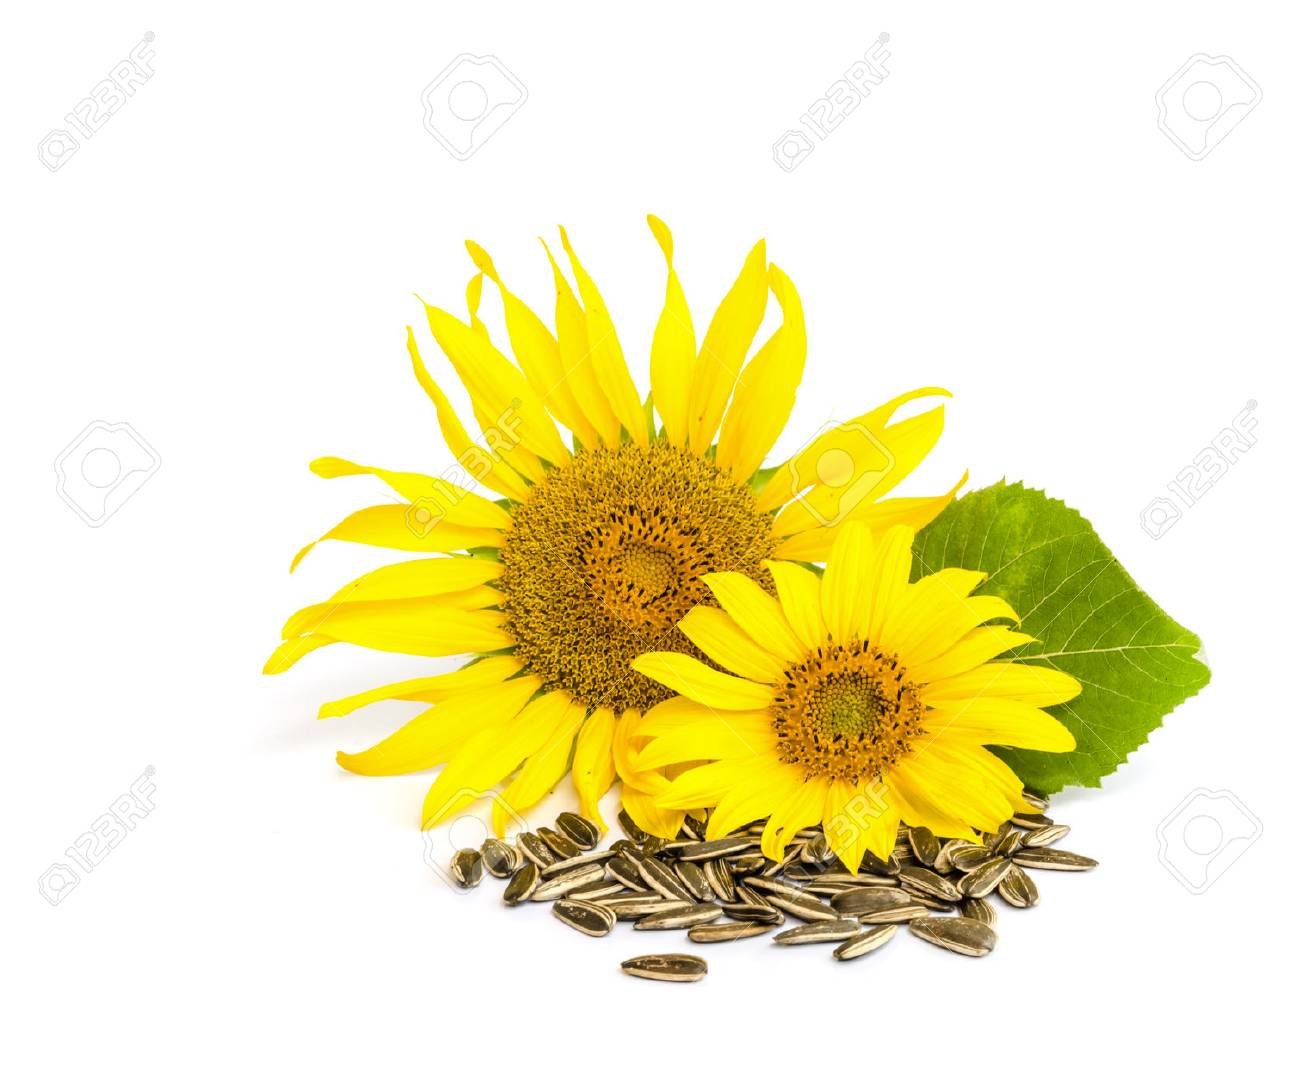 sunflower with seed isolated on white background. - 41294962